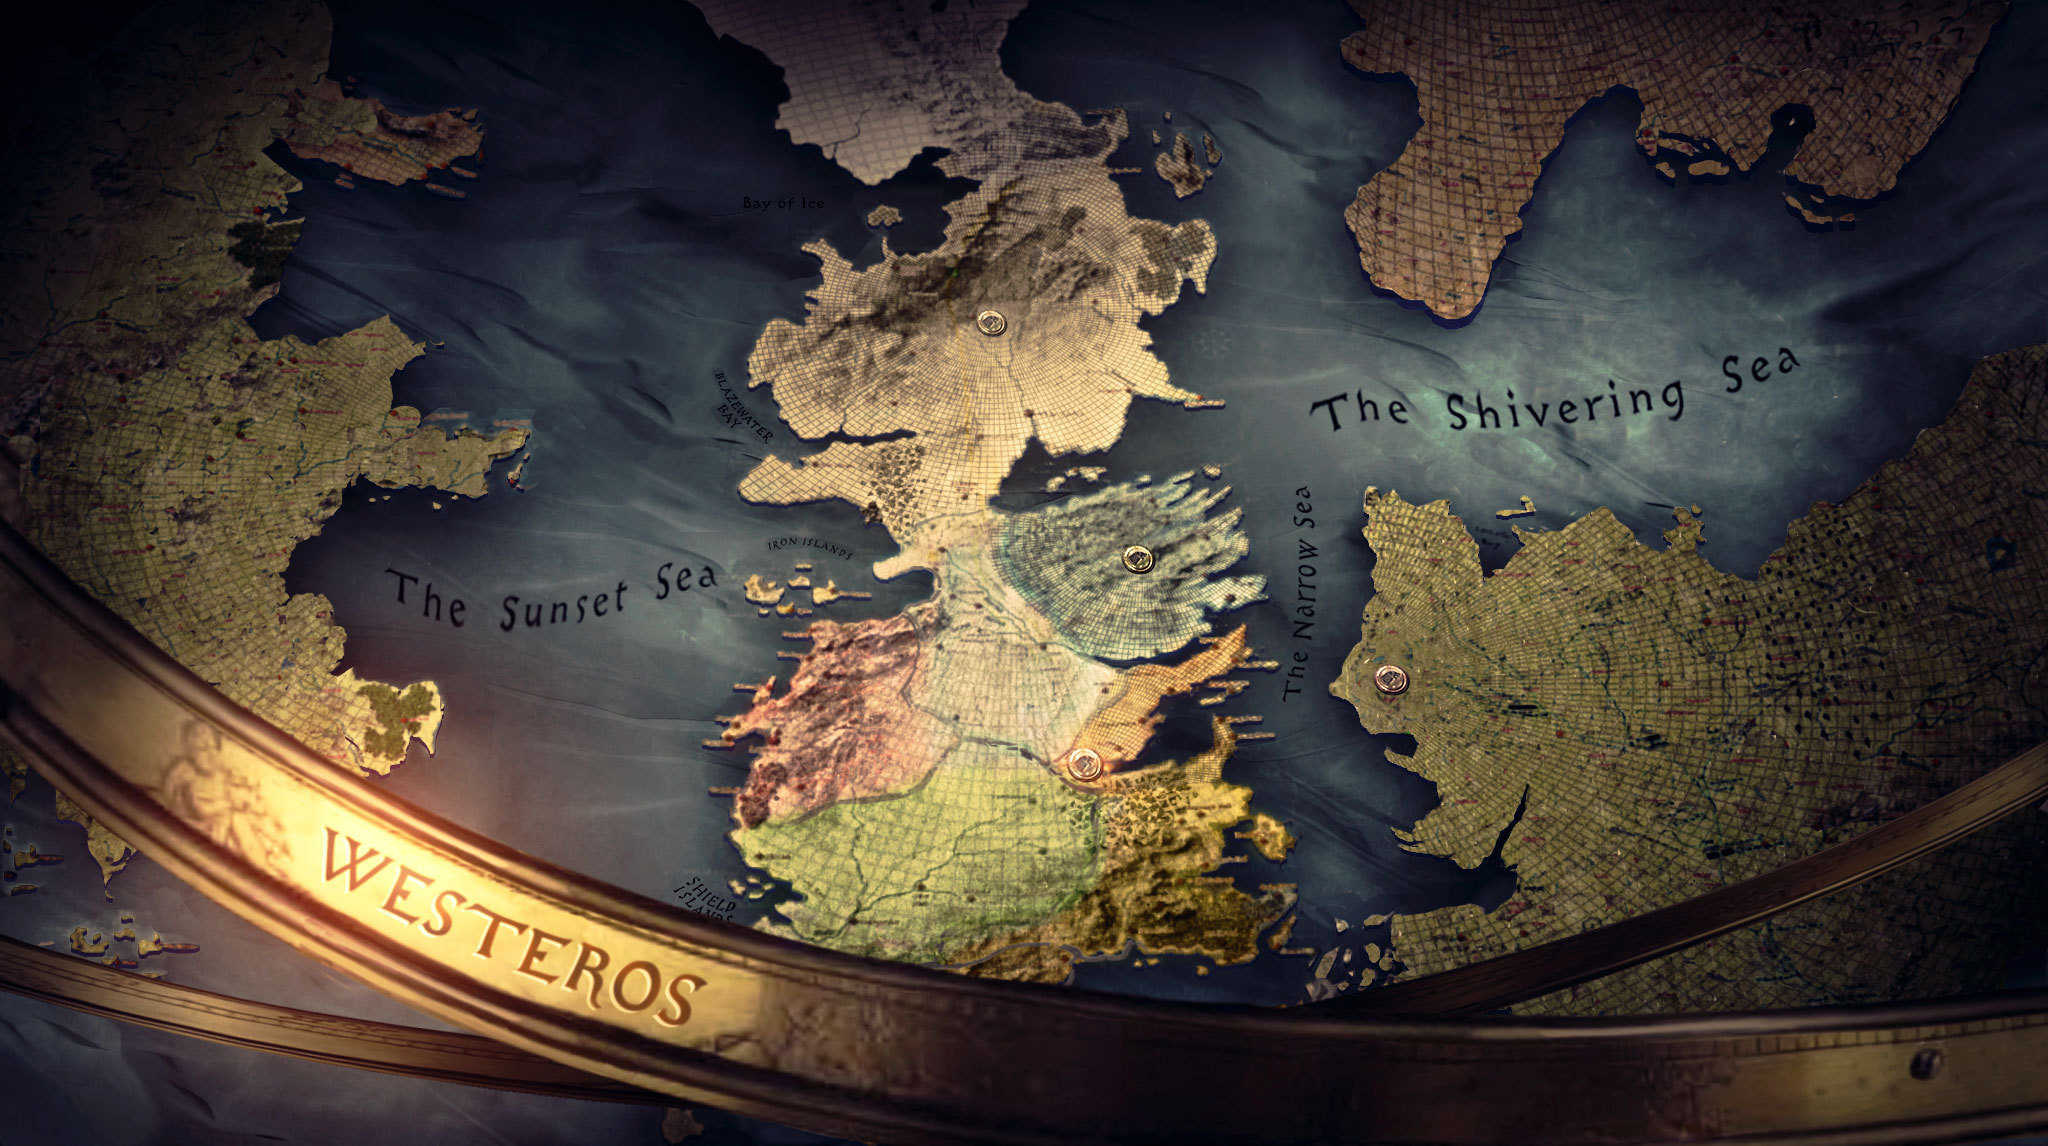 Opening Game of Thrones Map